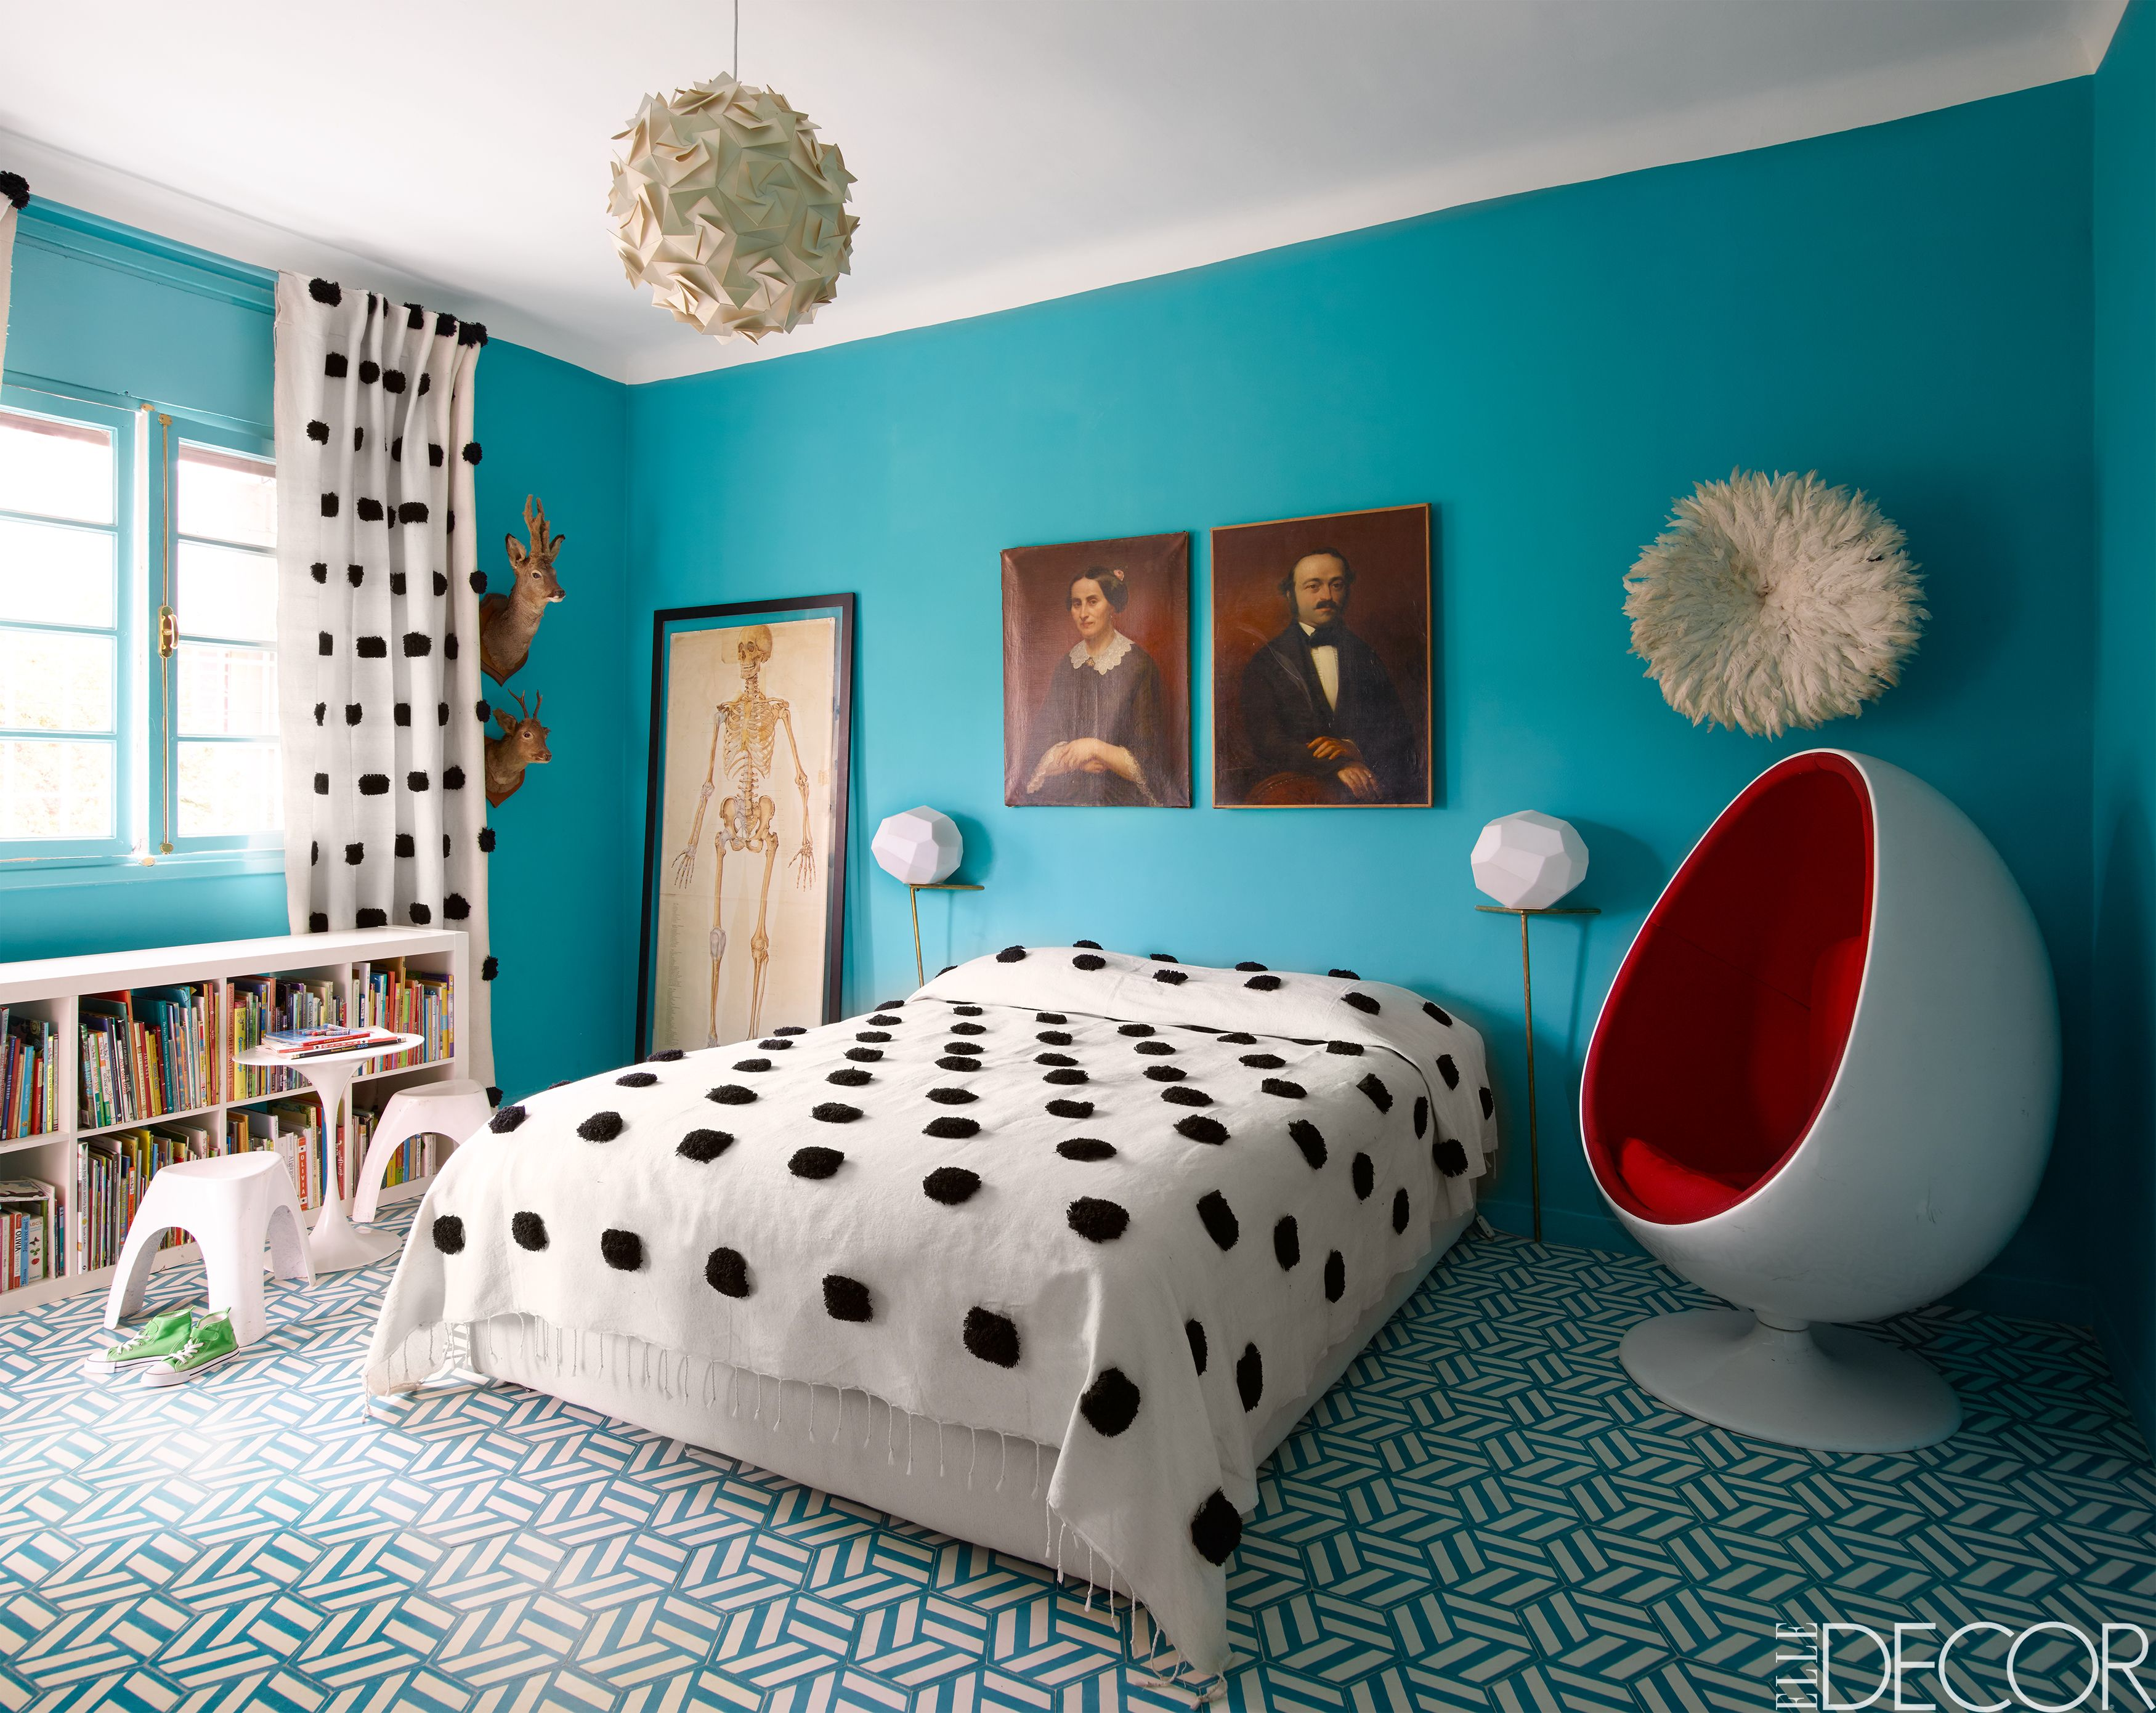 These Stylish Bedroom Designs Would Be A Hit With Any Girl Girl Bedroom Decor Turquoise Room Bedroom Turquoise